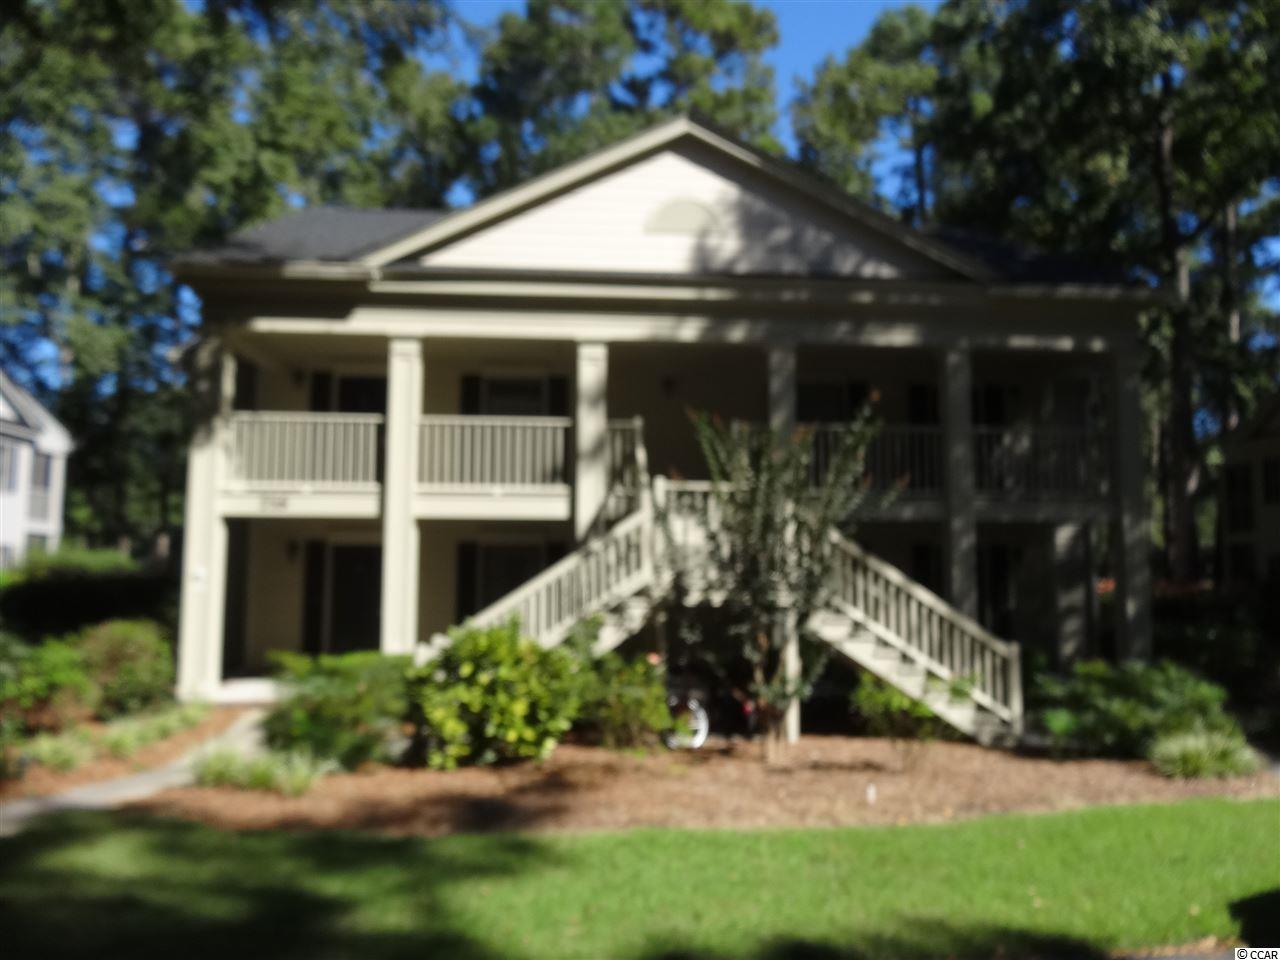 Welcome to 216-1 Stillwood Drive located on the 11th fairway of Pawleys Plantation Golf and Country Club, a Jack Nicklaus Signature Golf Course. Many upgrades to include recent hot water heater, refrigerator, garbage disposal, dishwasher, microwave, washer and dryer. Granite countertops in kitchen, slate floors in kitchen, baths & foyer, and laminate flooring in dining and great room and both bedrooms. Screened porch with ceiling fan overlooking the golf course. Two large bedrooms and two full baths. Never rented, only lightly used for second home. Weehawka Owners Pool a short walk away. Close to Pawleys Island famous beaches,fine and casual dining restaurants, night life, shopping, and other championship golf courses. Golf Course Membership information available upon request. Historic Charleston 65 miles south and Mrytle Beach 35 miles north.